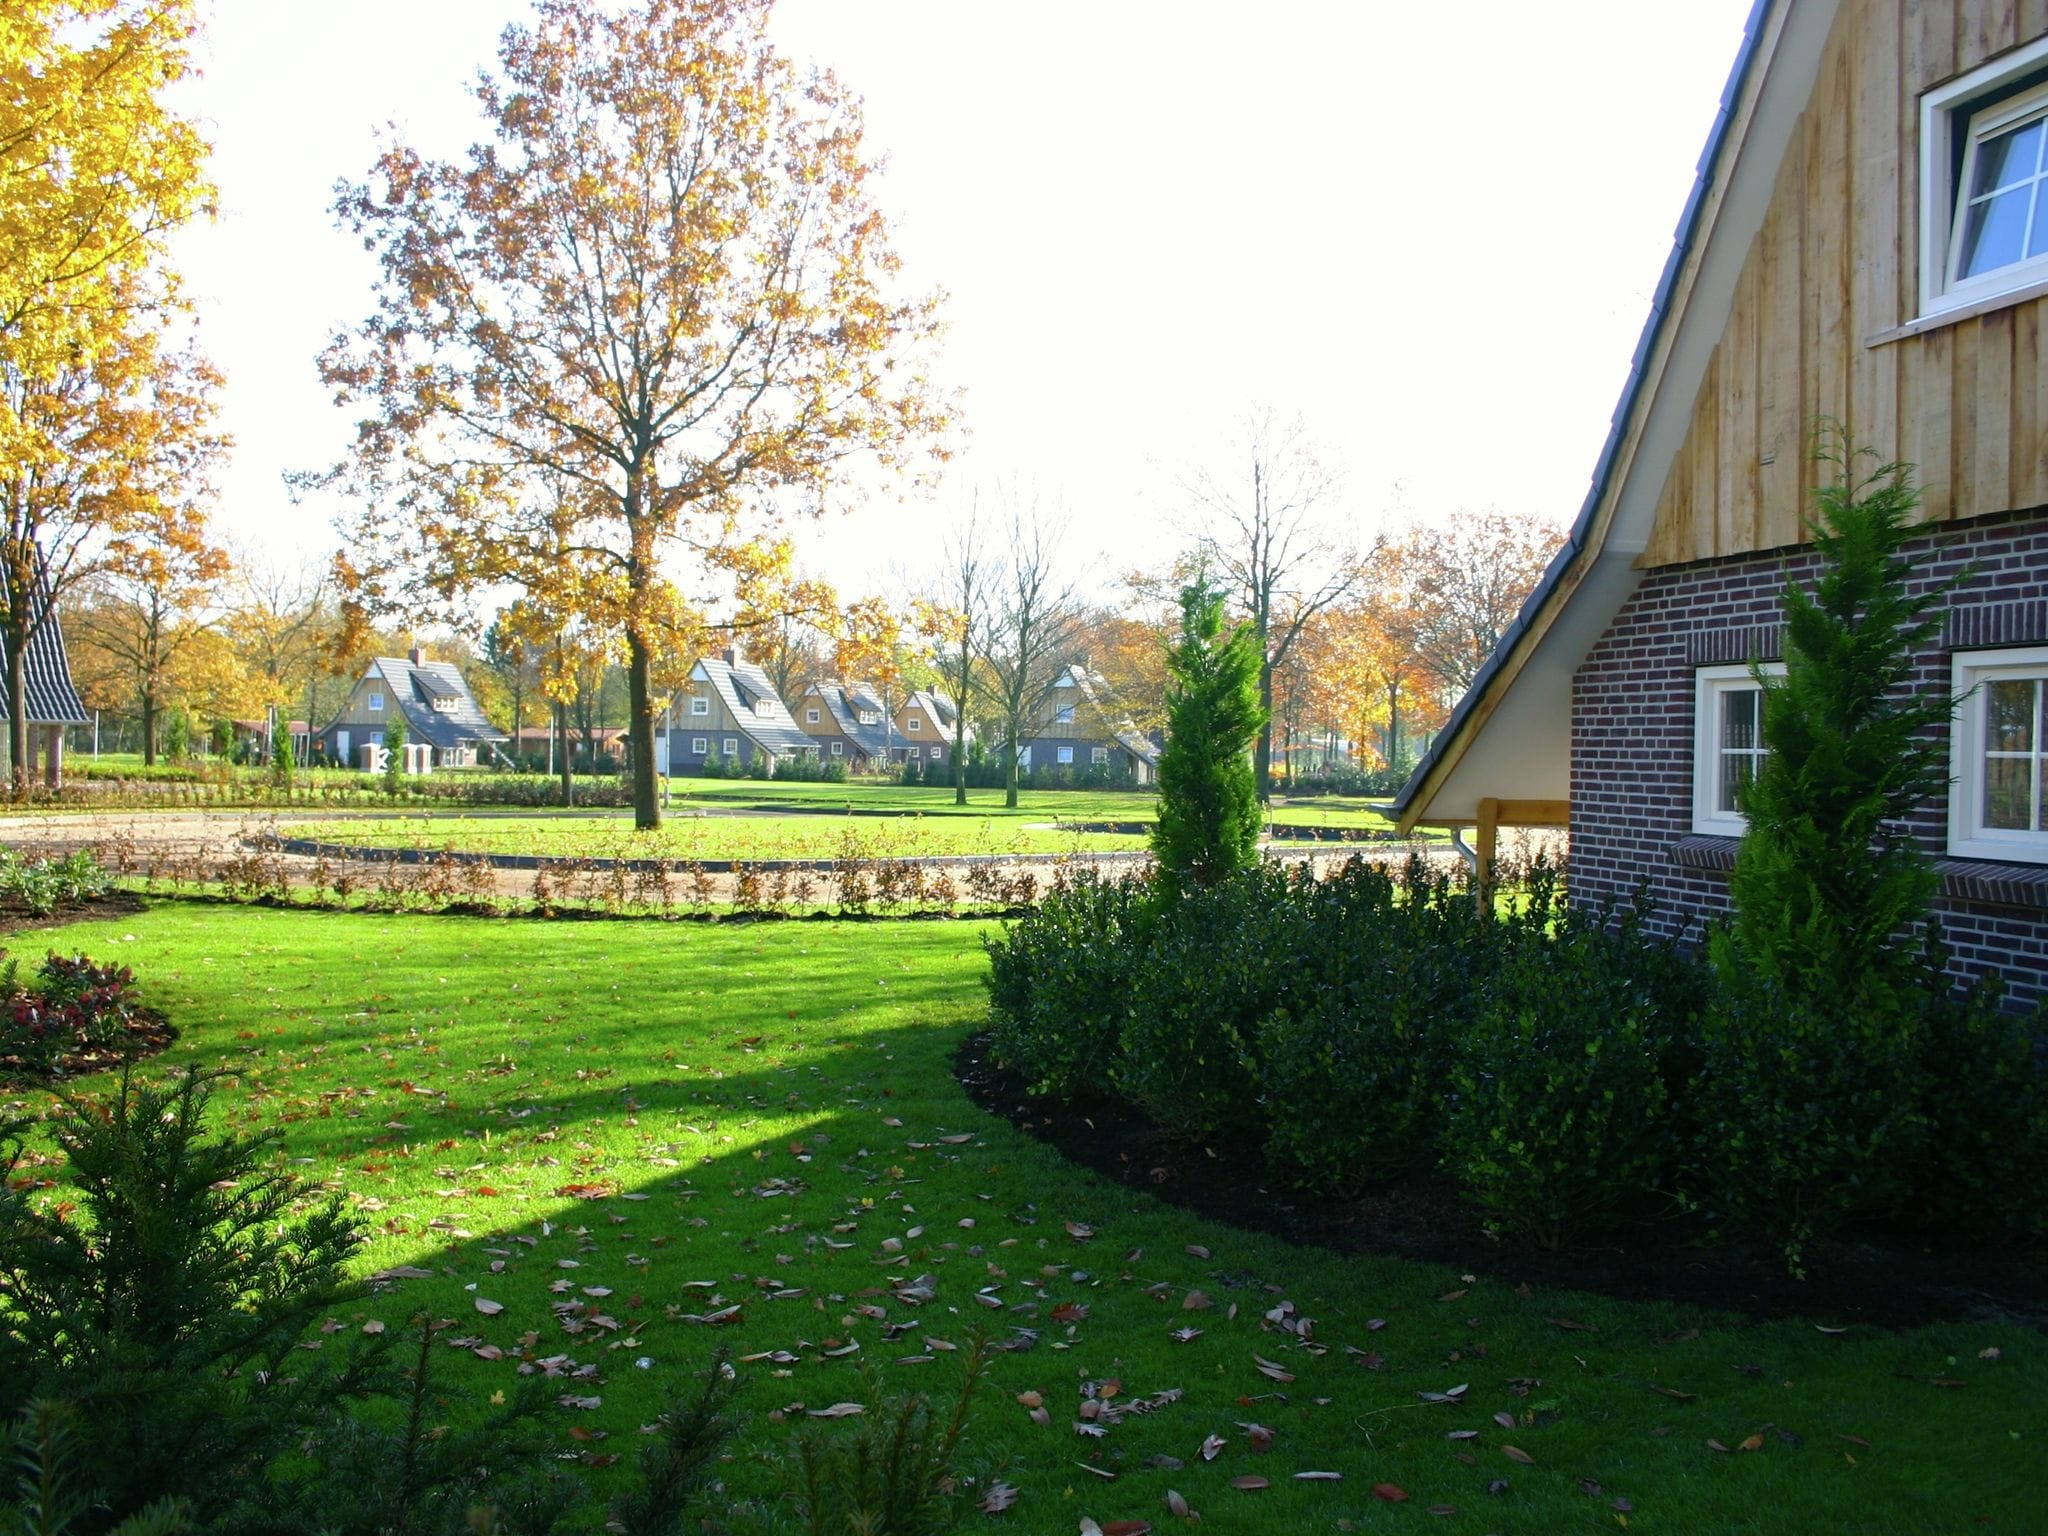 Holland | Overijssel | Holiday home Hof van Salland - Beukelaer Wellness 5 persoons | all year | AreaSummer1KM